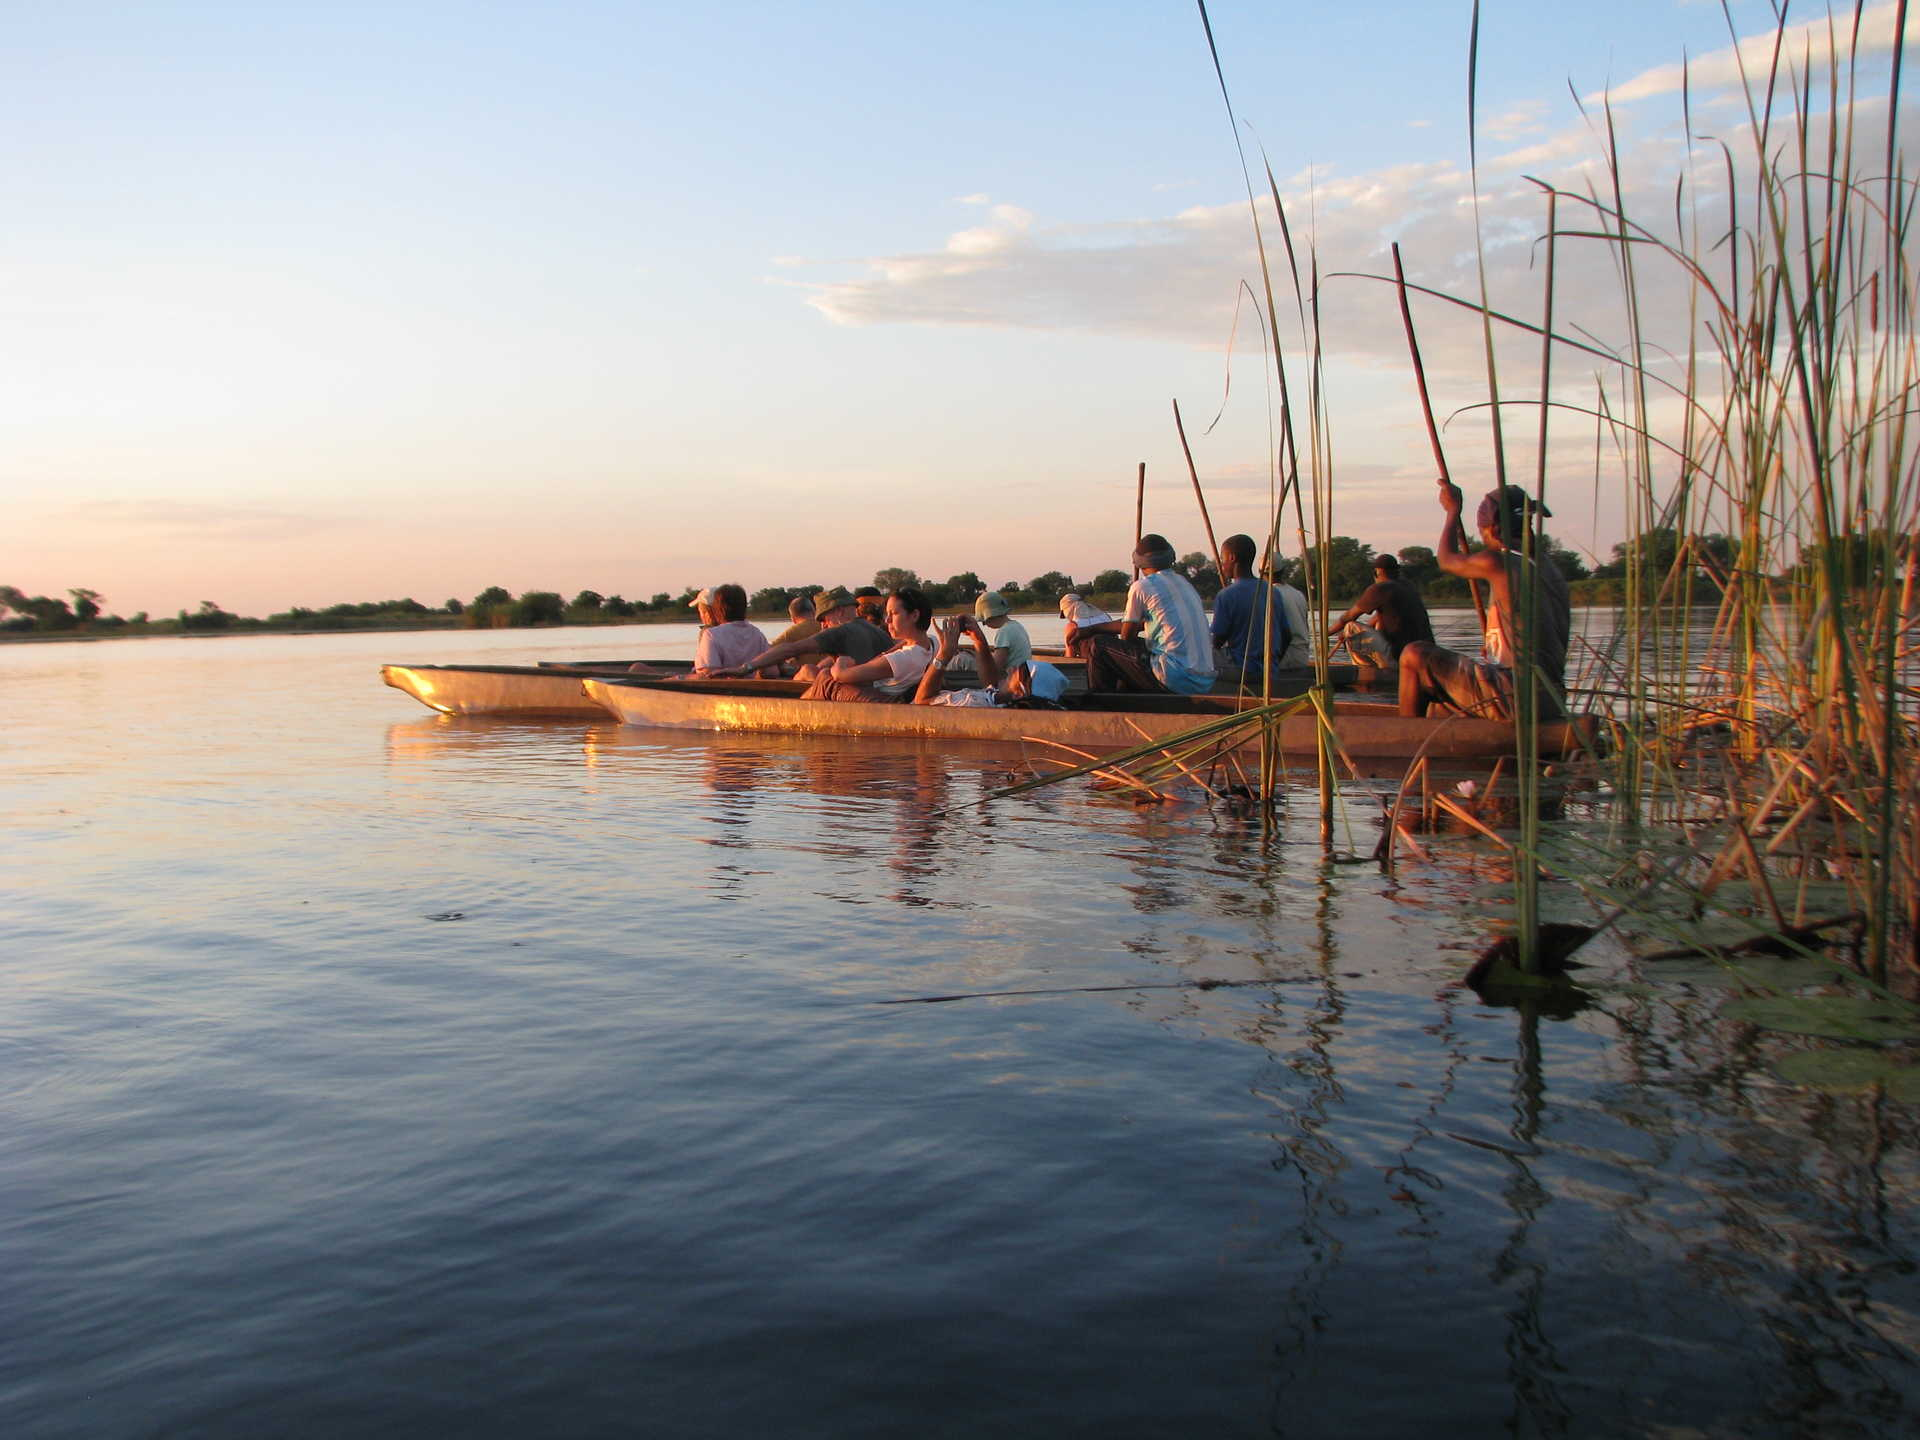 Balade en pirogue traditionnelle au Botswana